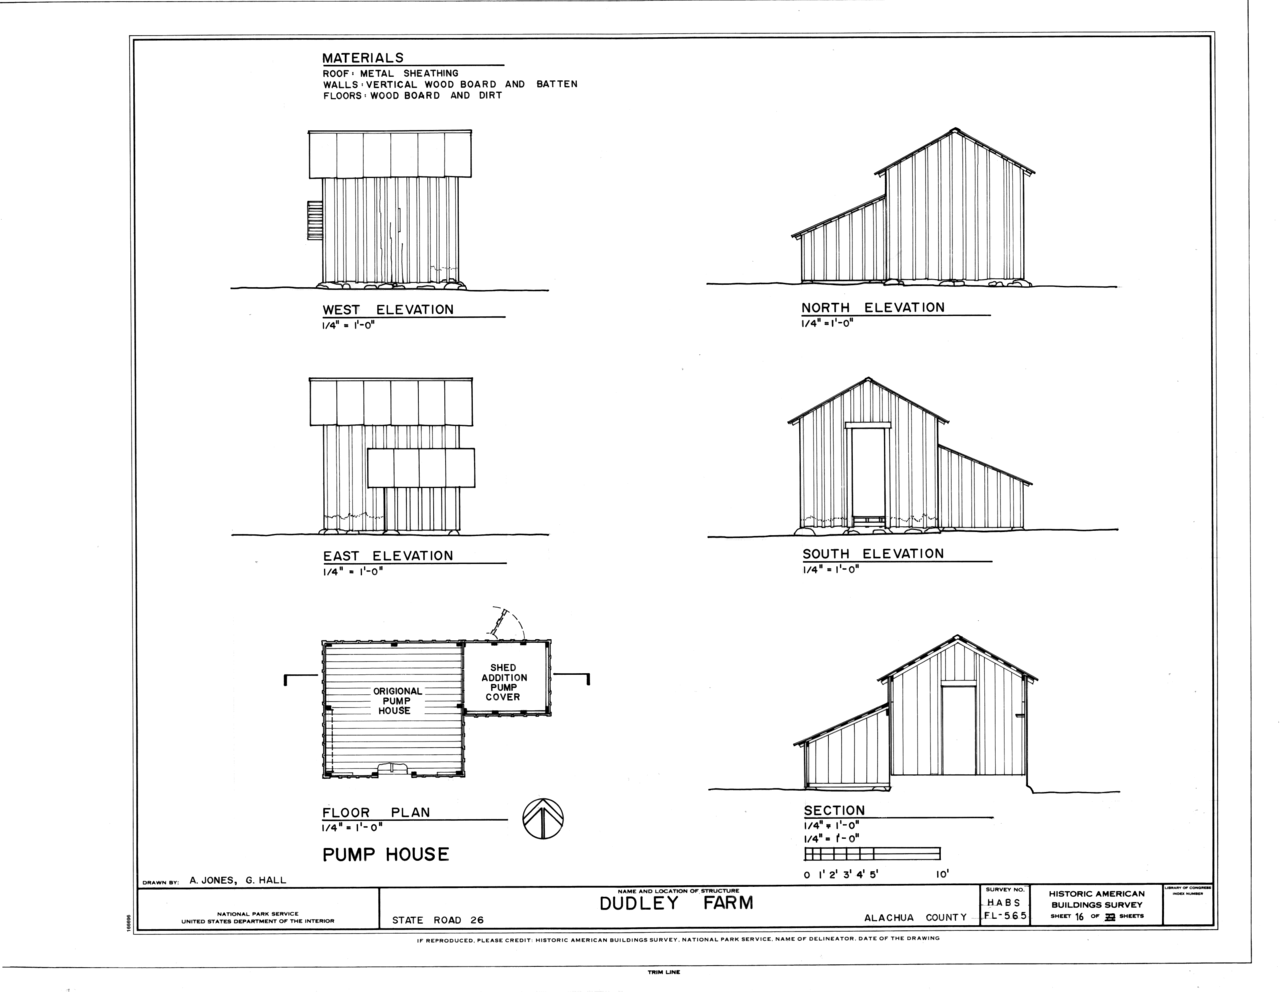 File pump house elevations floor plan and section for Floor plans and elevations